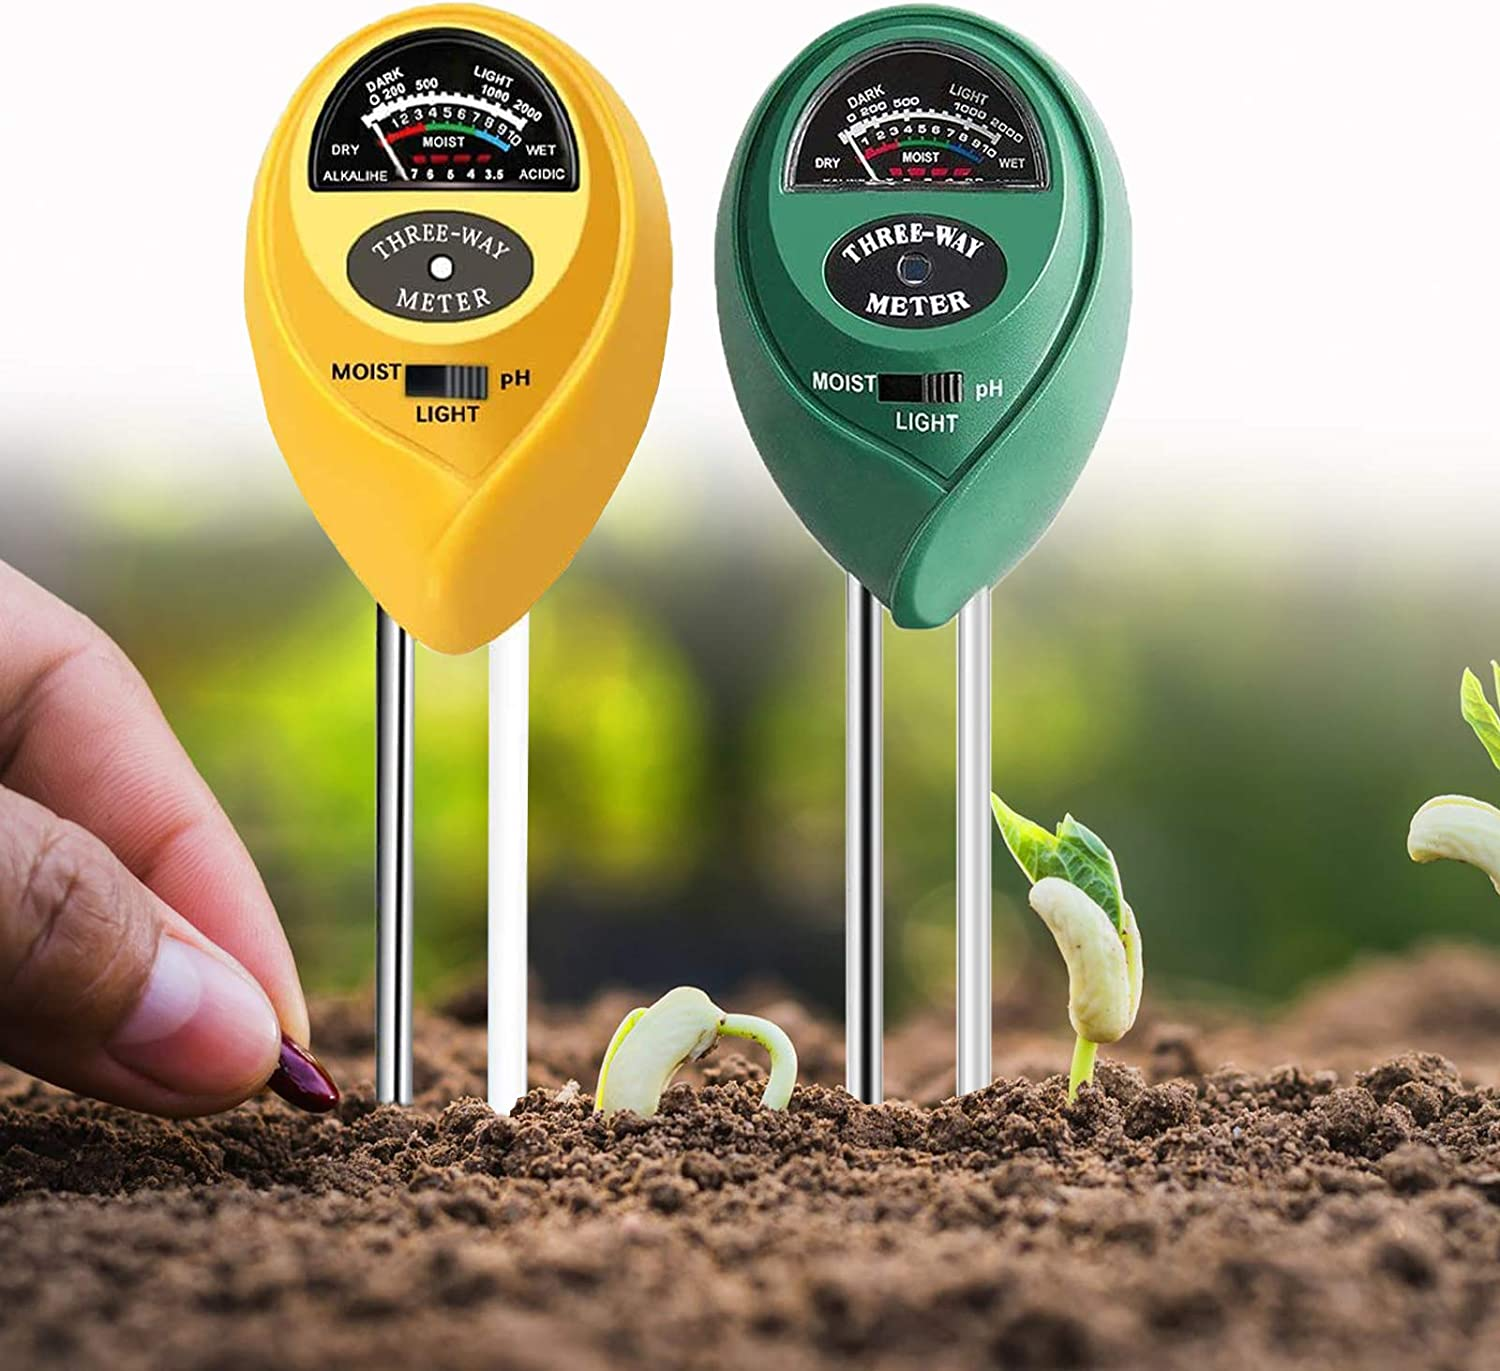 HSTMYFS Soil pH Meter, 2 Pack 3-in-1 Soil Tester Kits with Moisture,Light and PH Test for Garden, Farm, Lawn, Indoor & Outdoor (No Battery Needed)